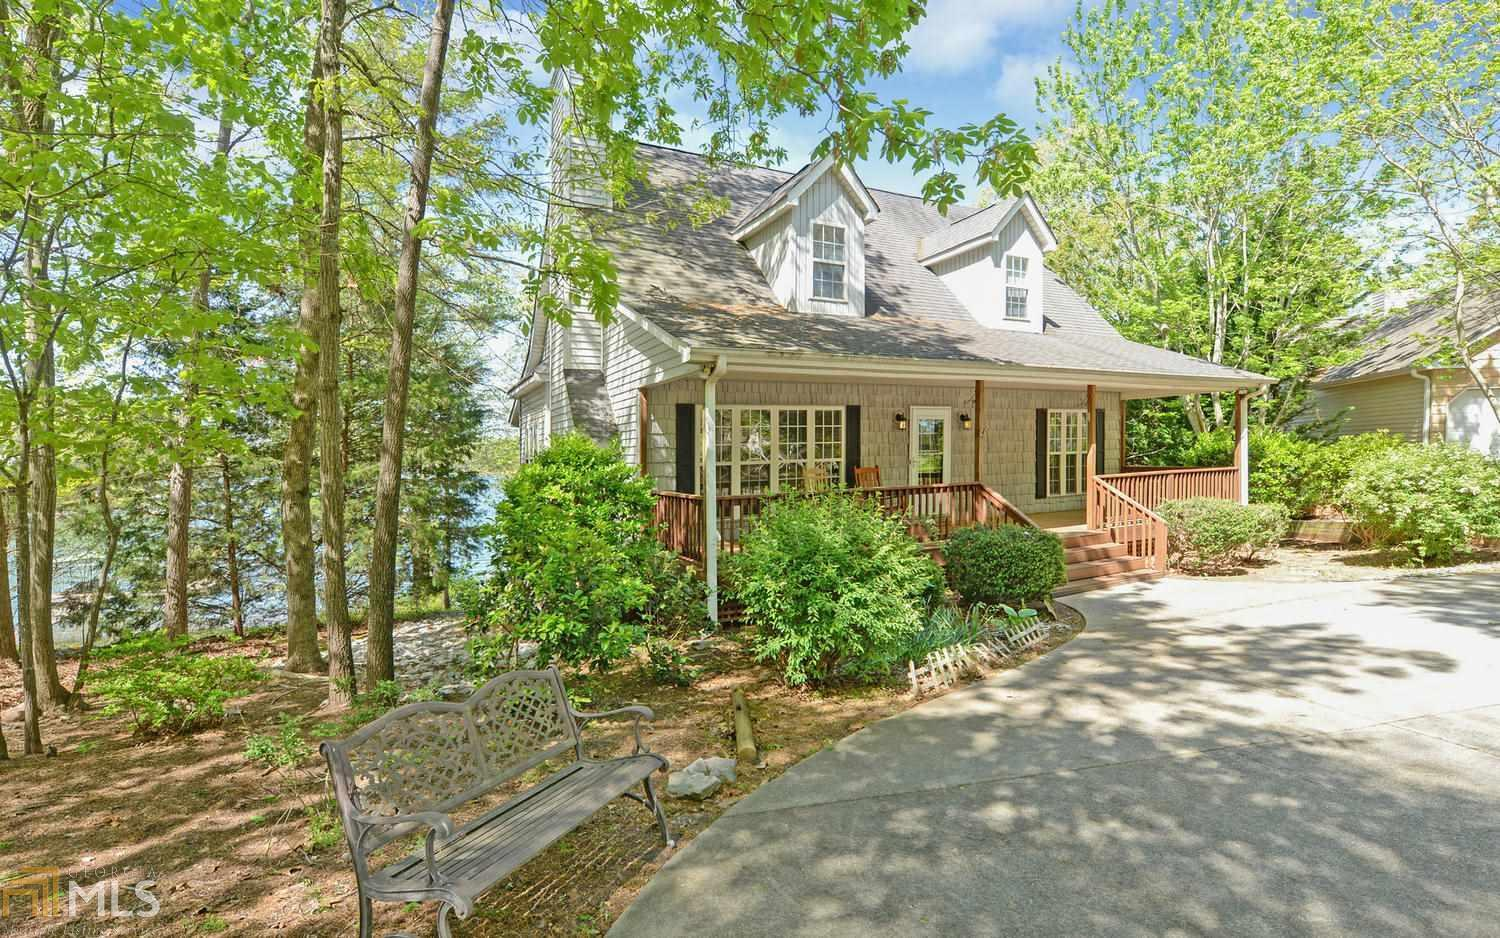 3 bed / 3 baths Home in Hartwell for $545,000